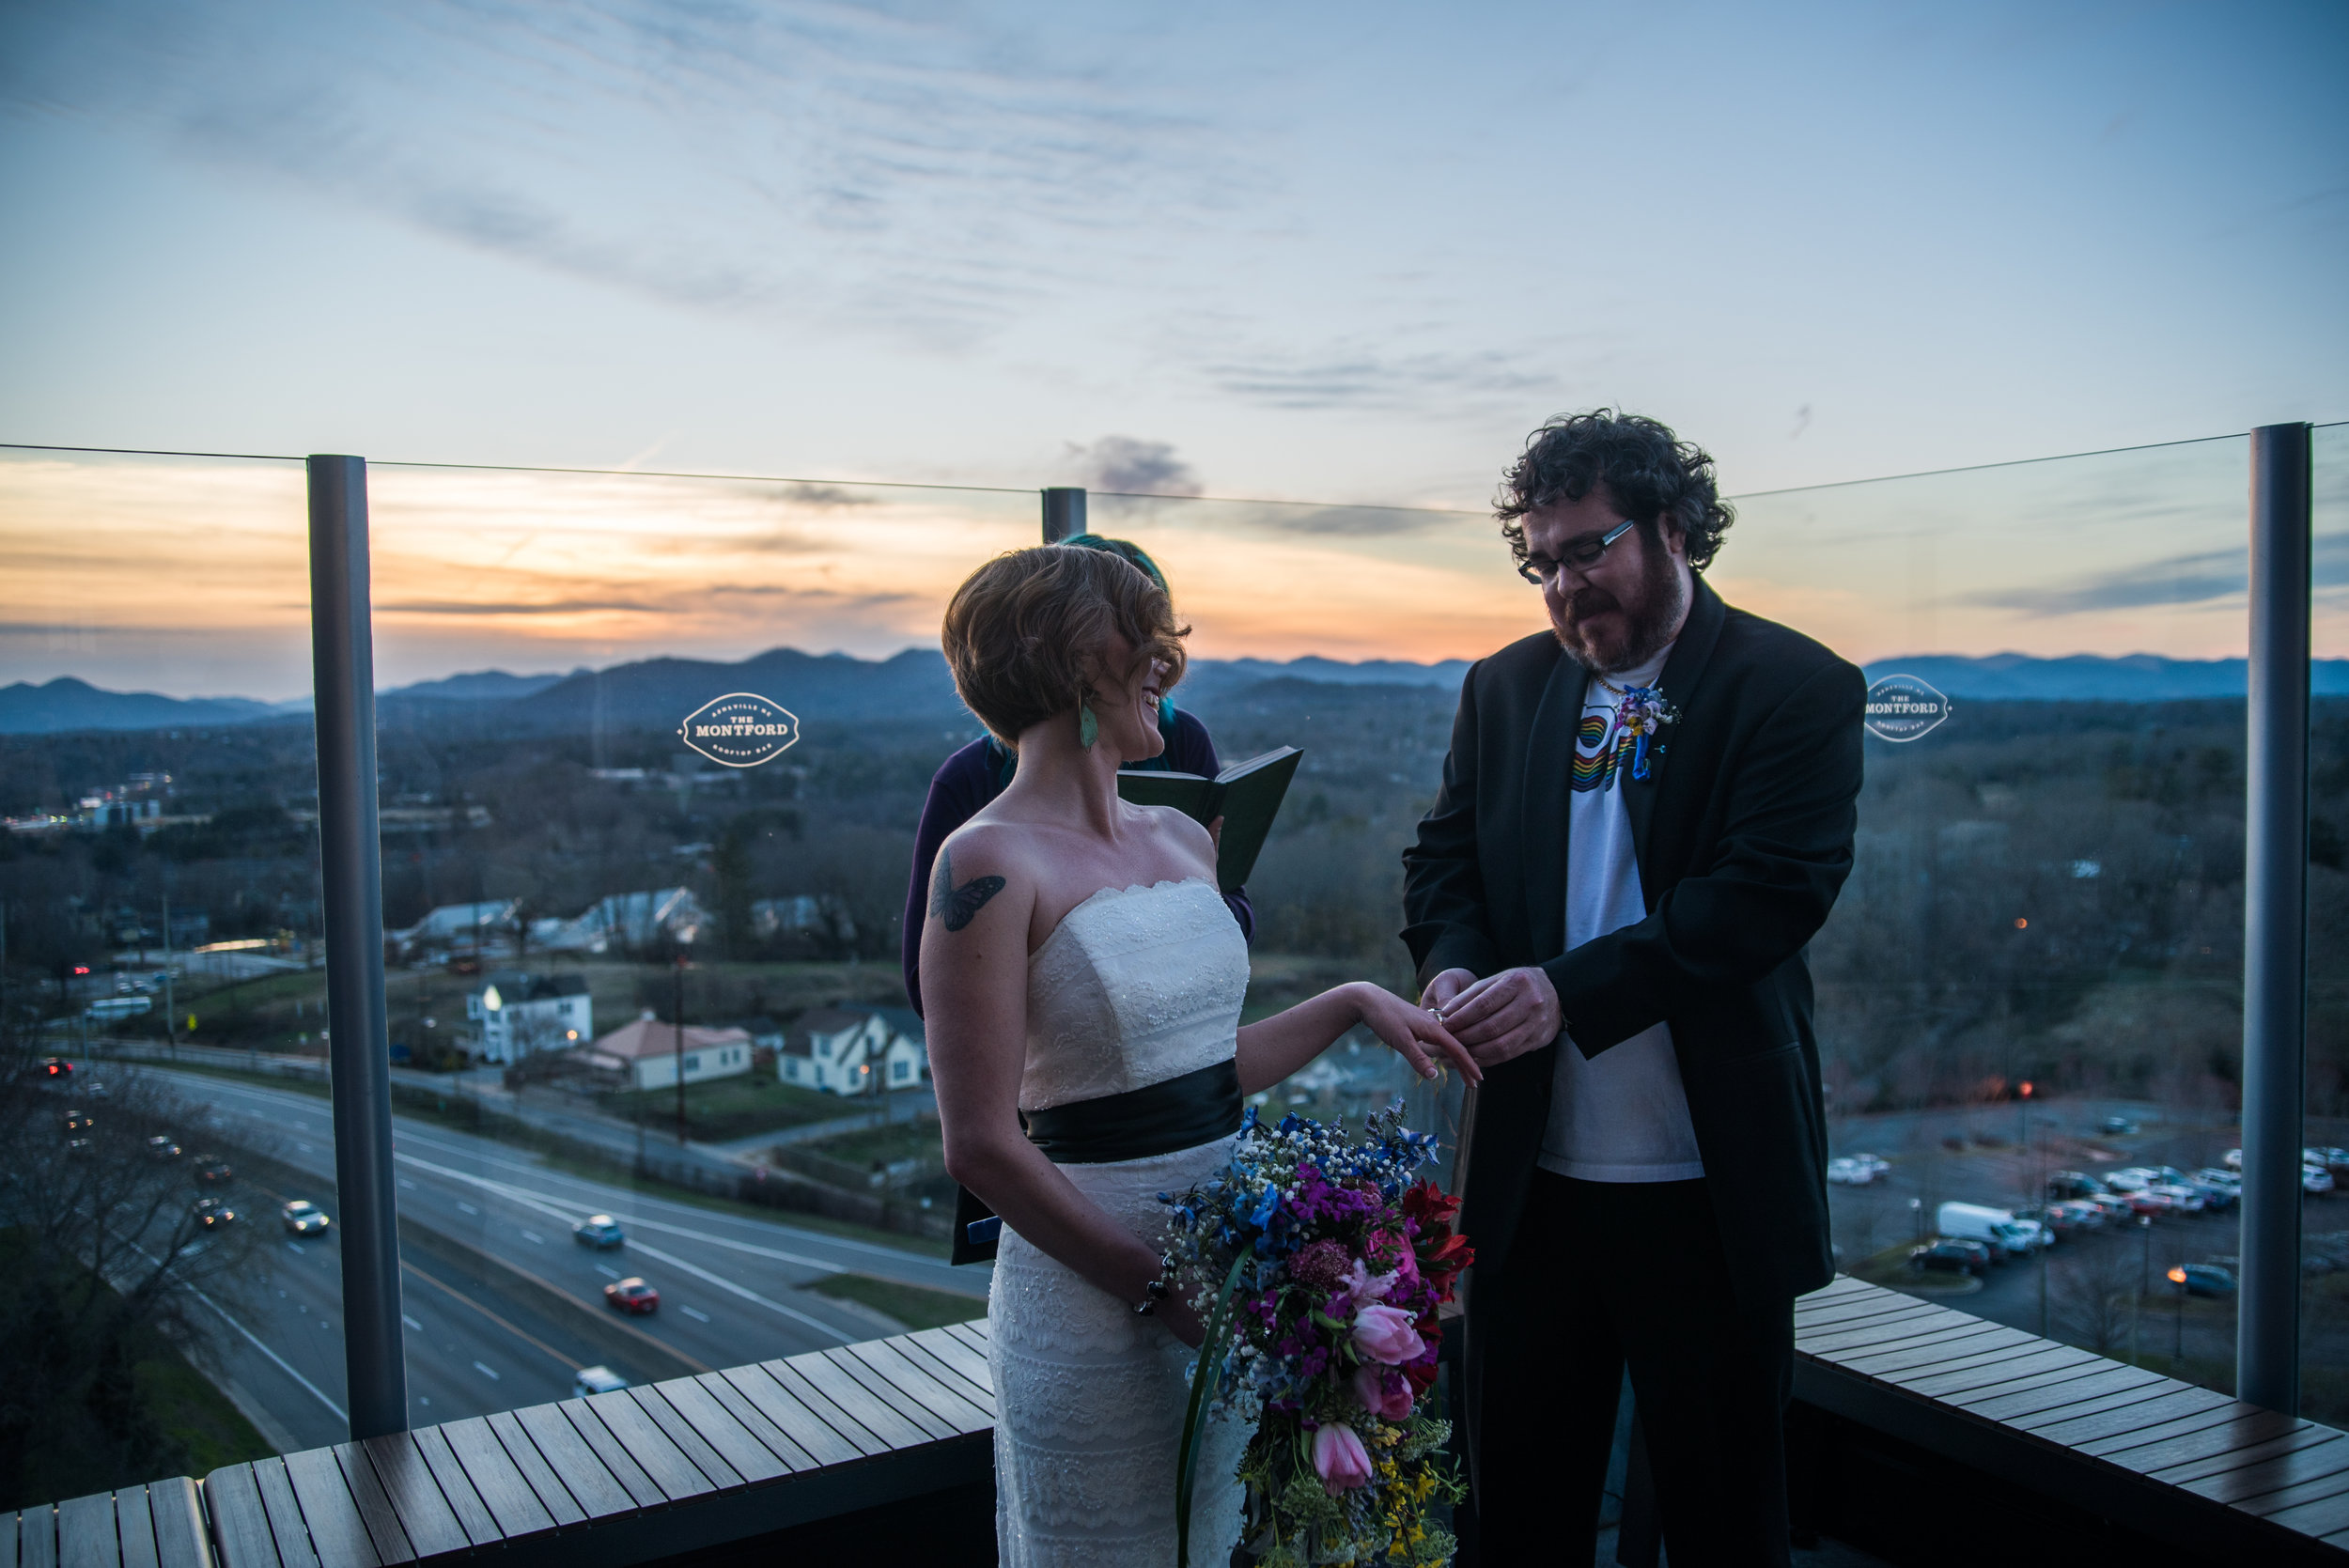 Sunset at The Montford Rooftop Bar in Asheville, NC